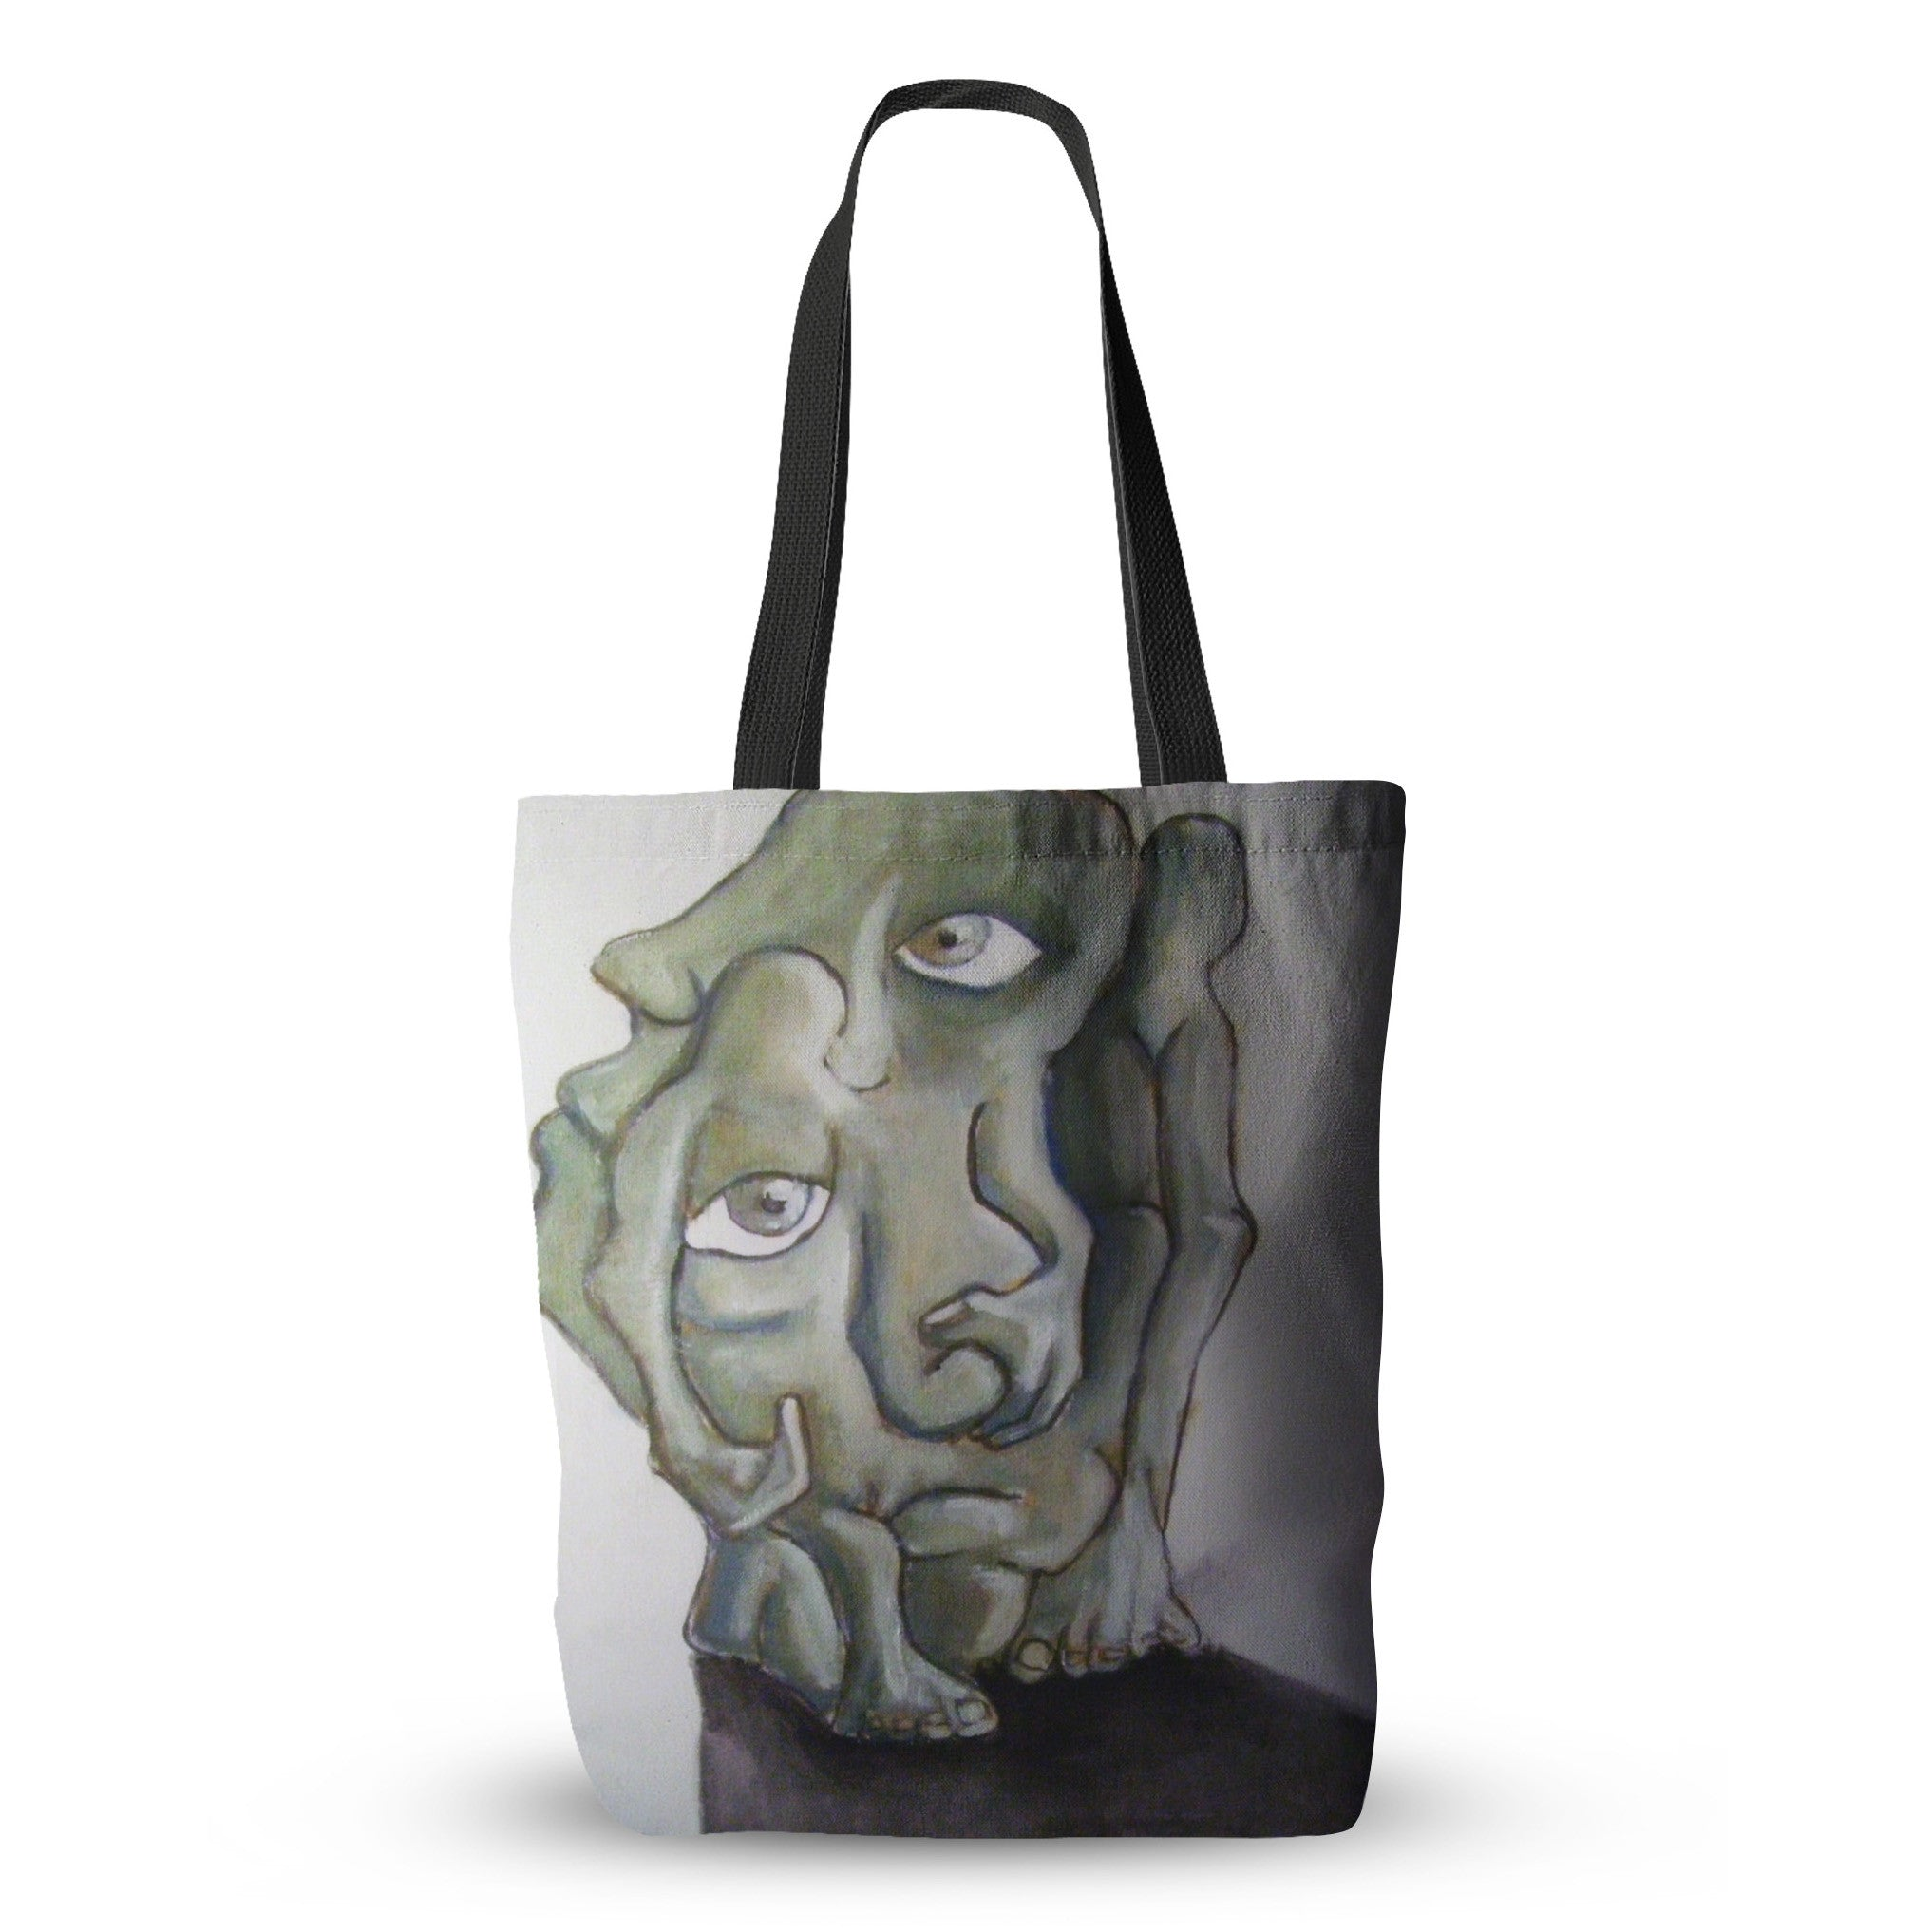 2 Left Feet Tote Bag